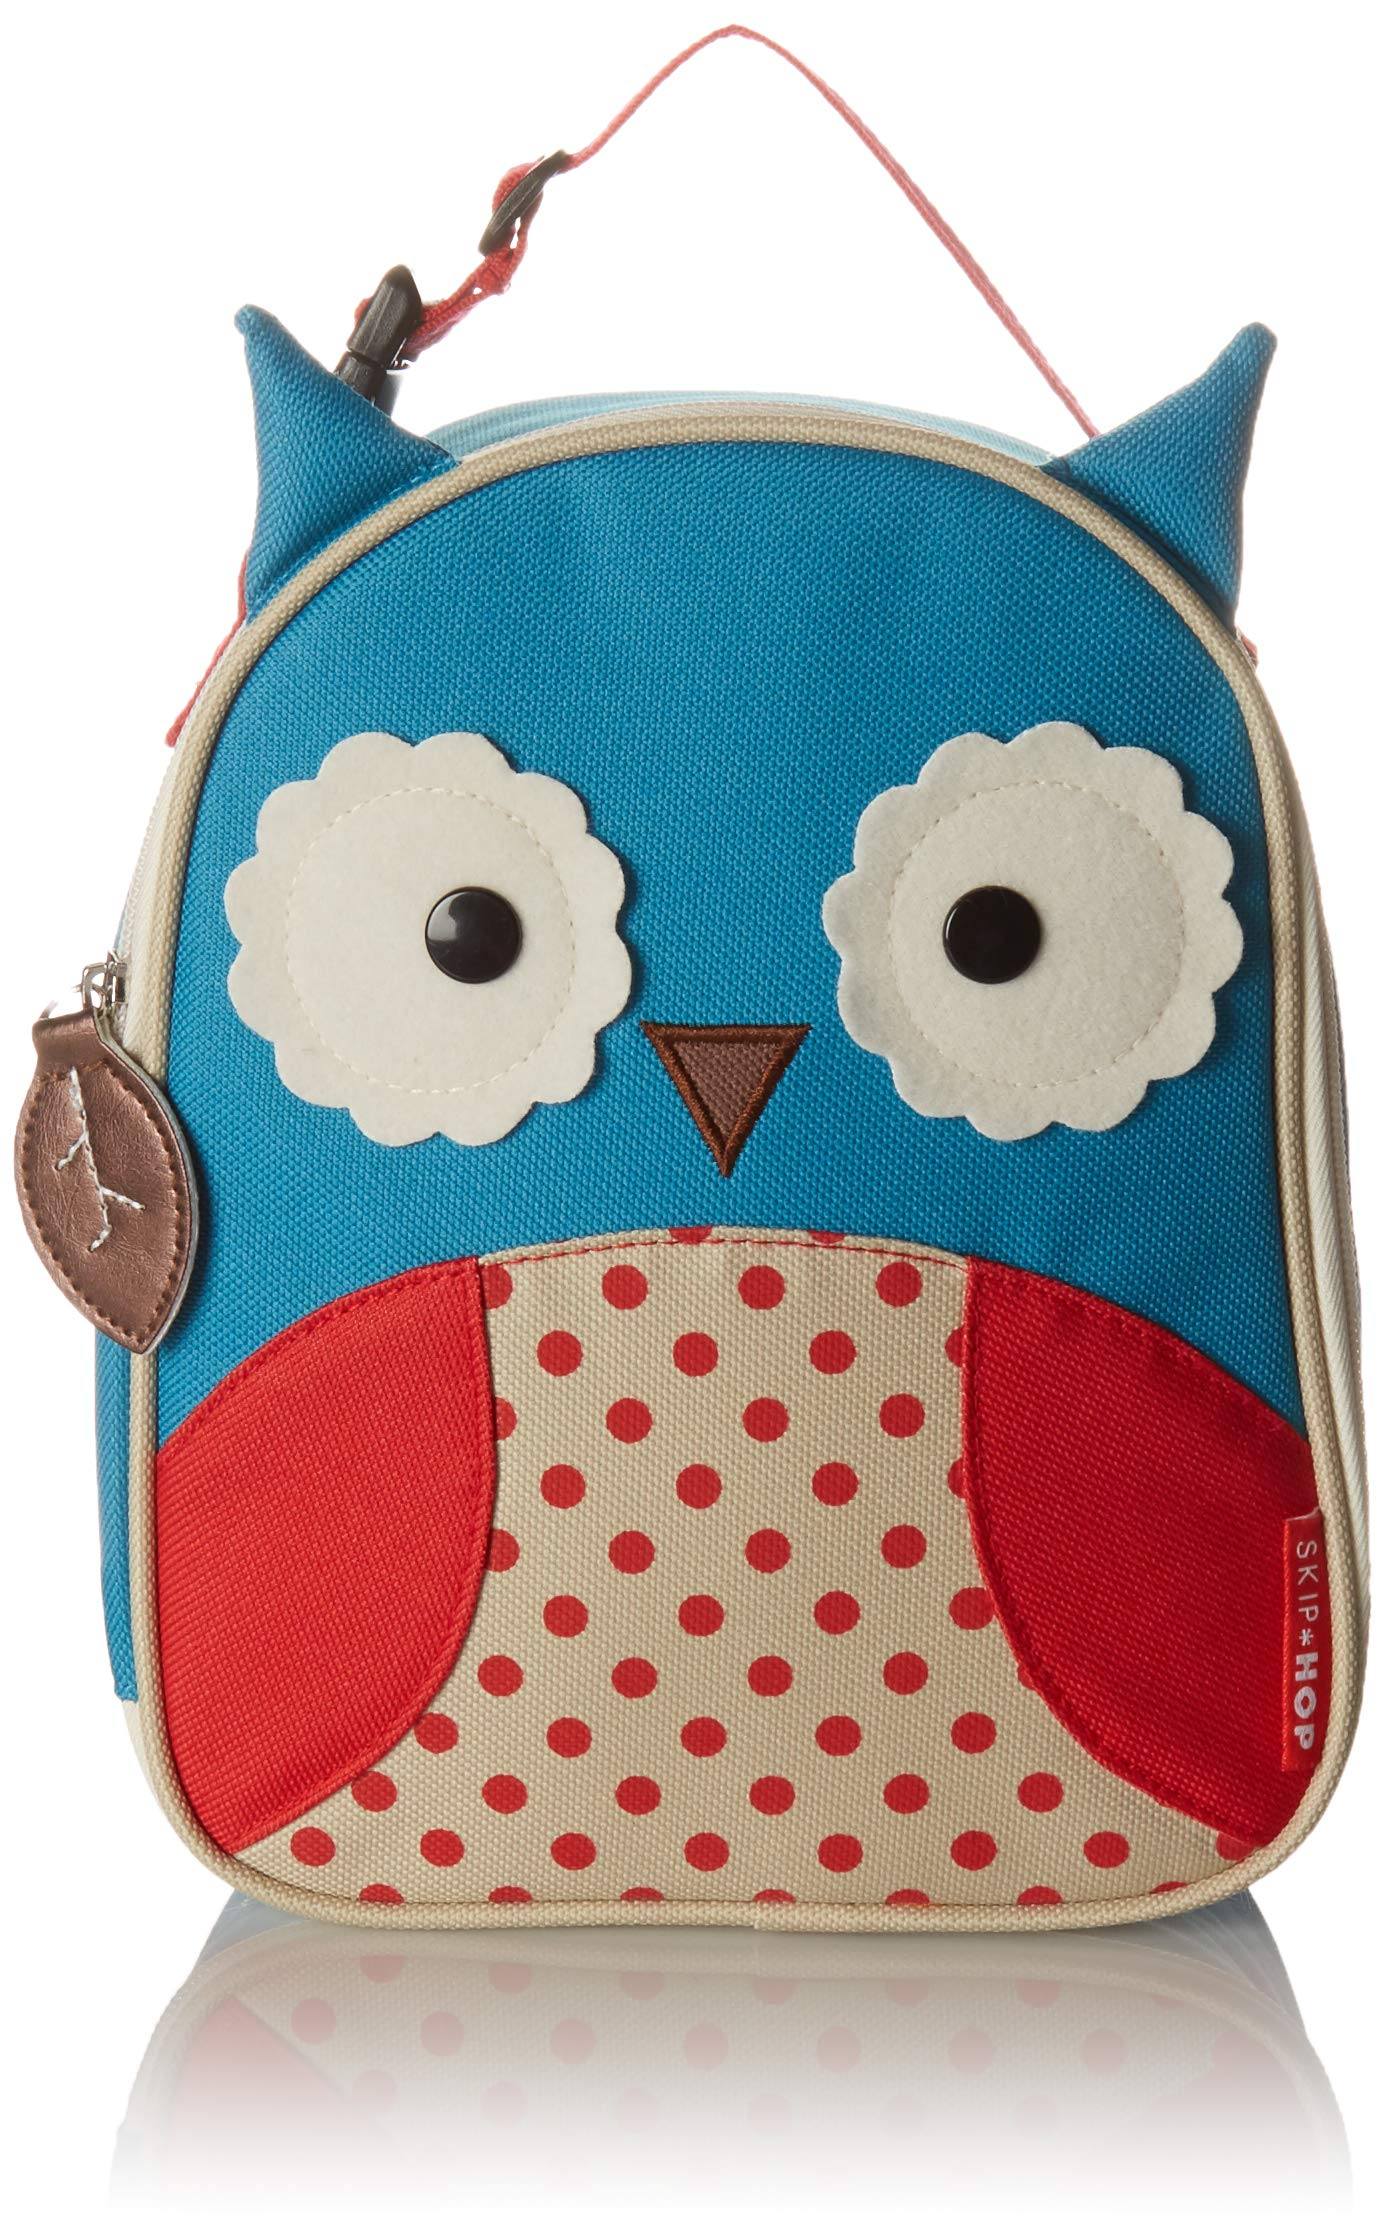 Skip Hop Zoo Kids Insulated Lunch Box, Otis Owl, Blue (DISCONTINUED BY MANUFACTURER)